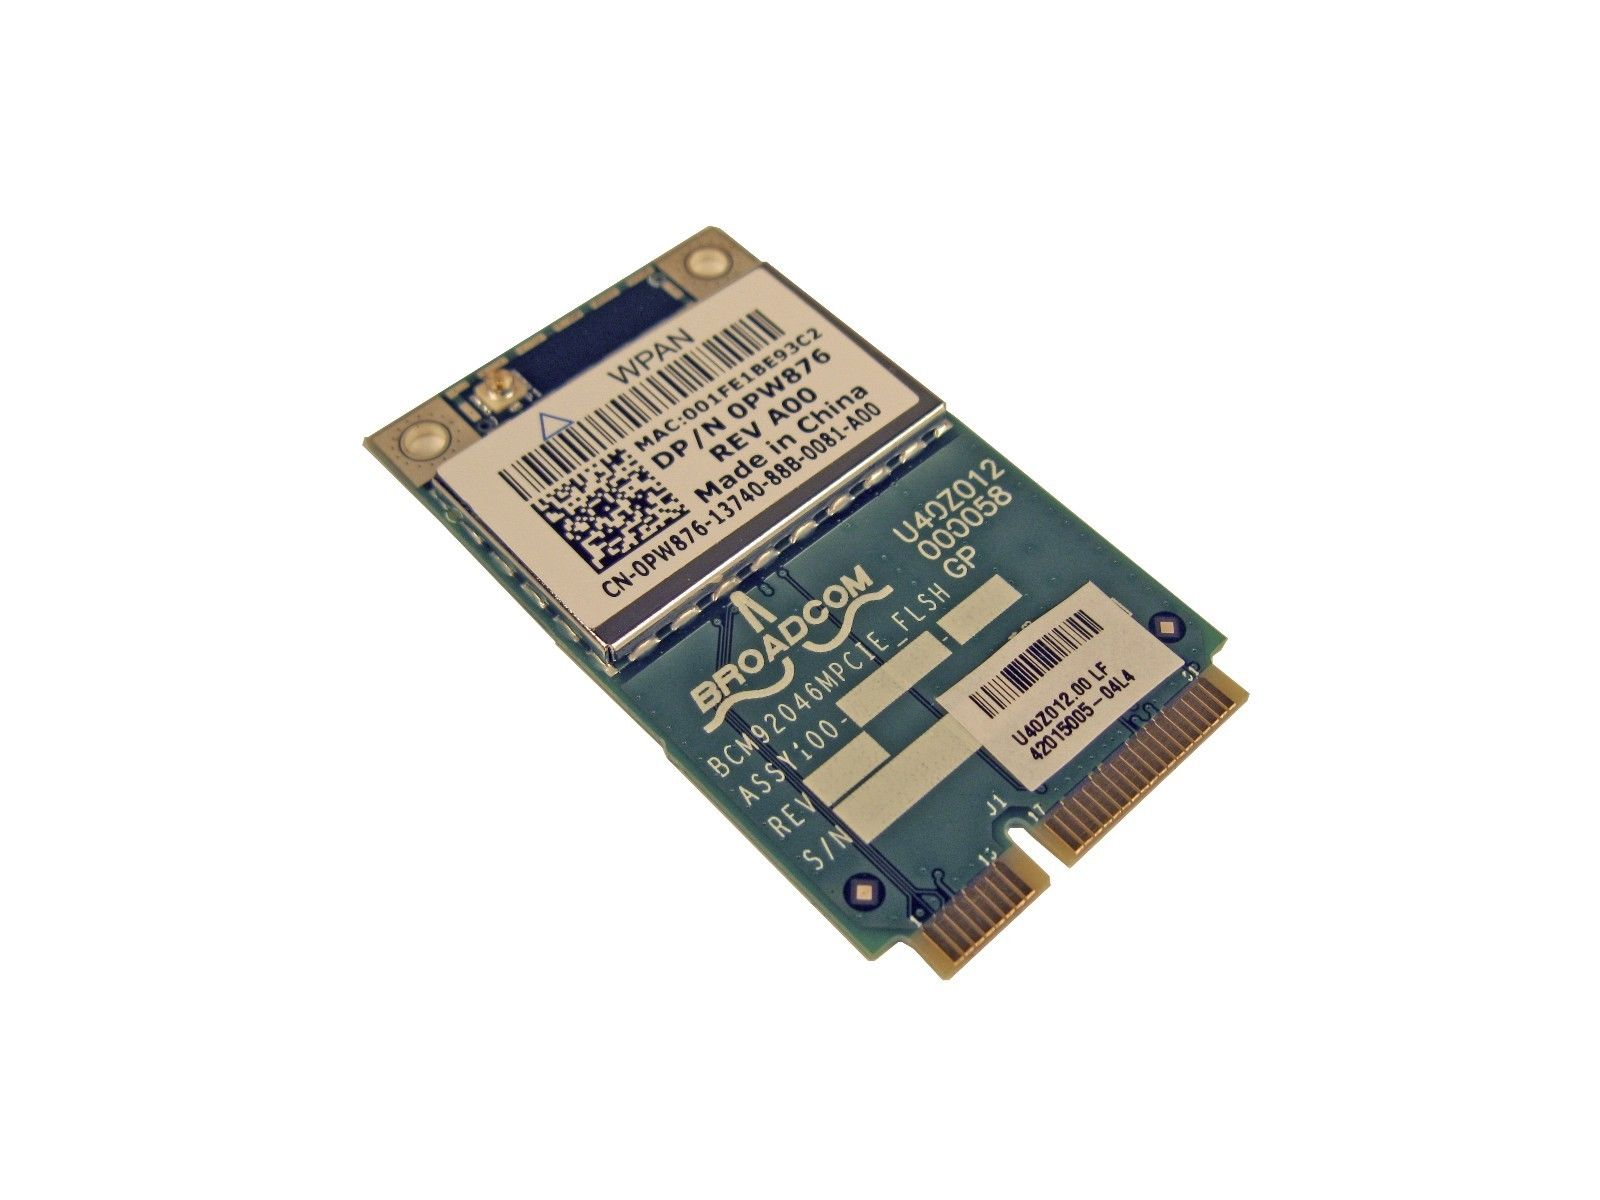 Dell PW876 Studio 1735 PCI-e 370 Wireless Bluetooth Card